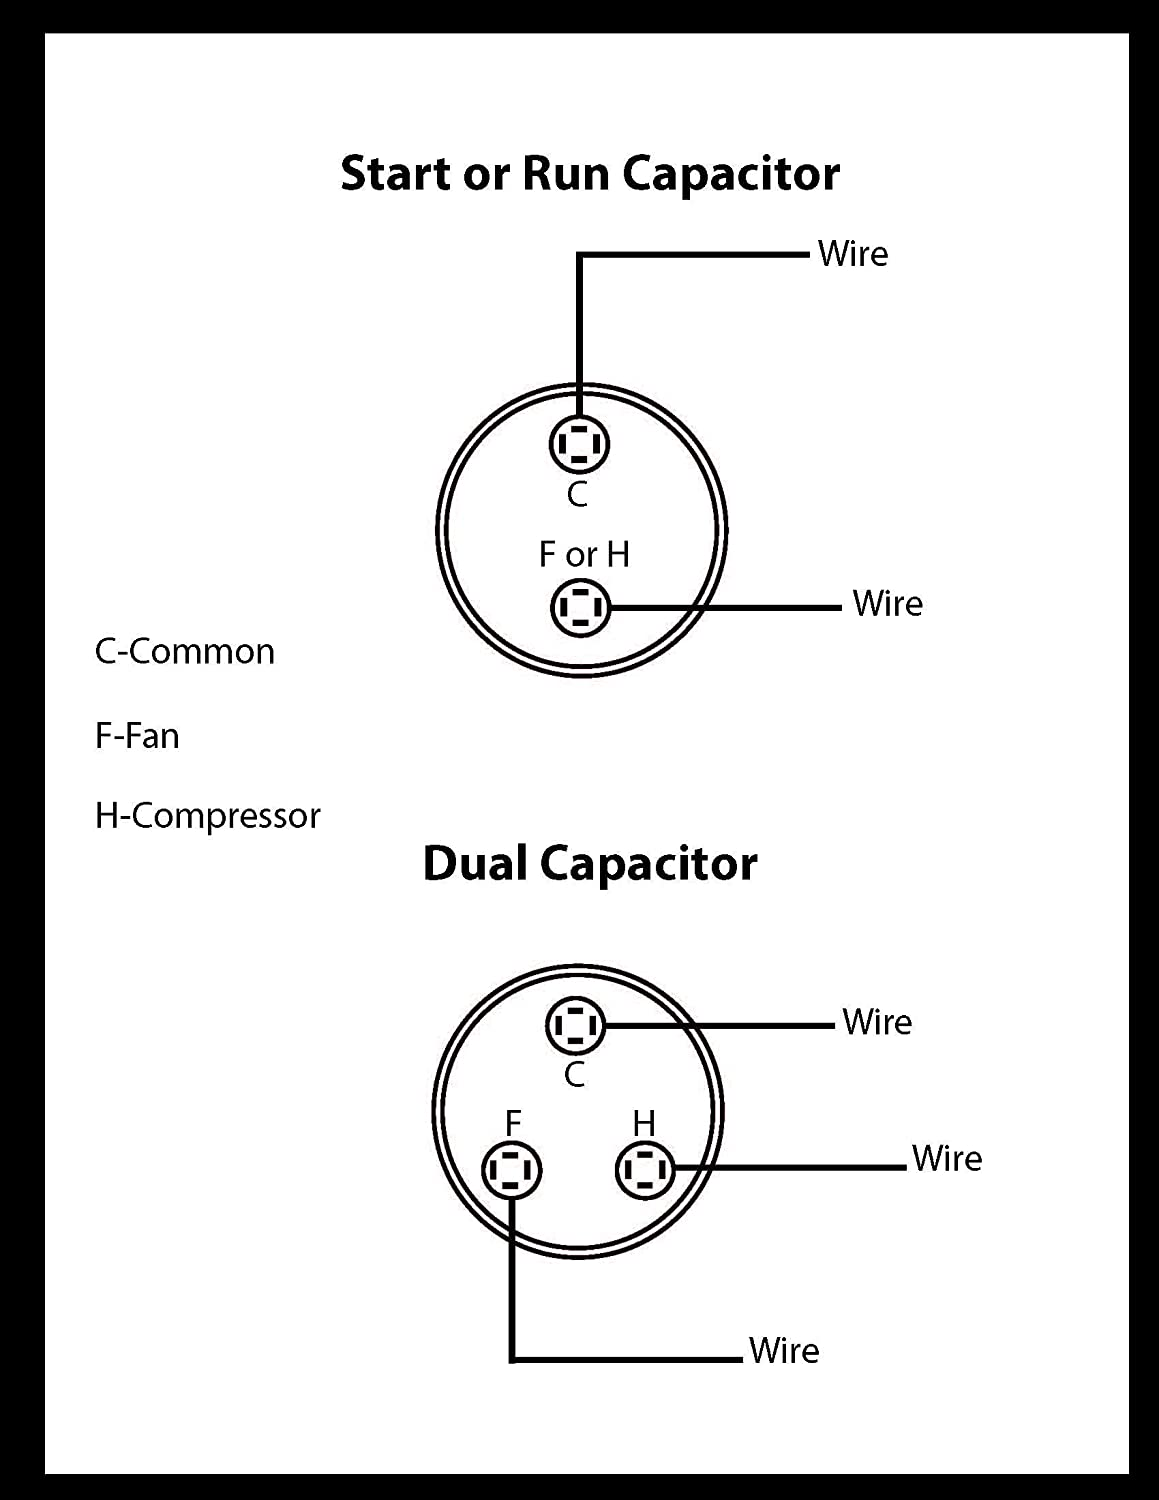 Run Capacitor Wiring Diagram : Compressor limit switch wiring diagram